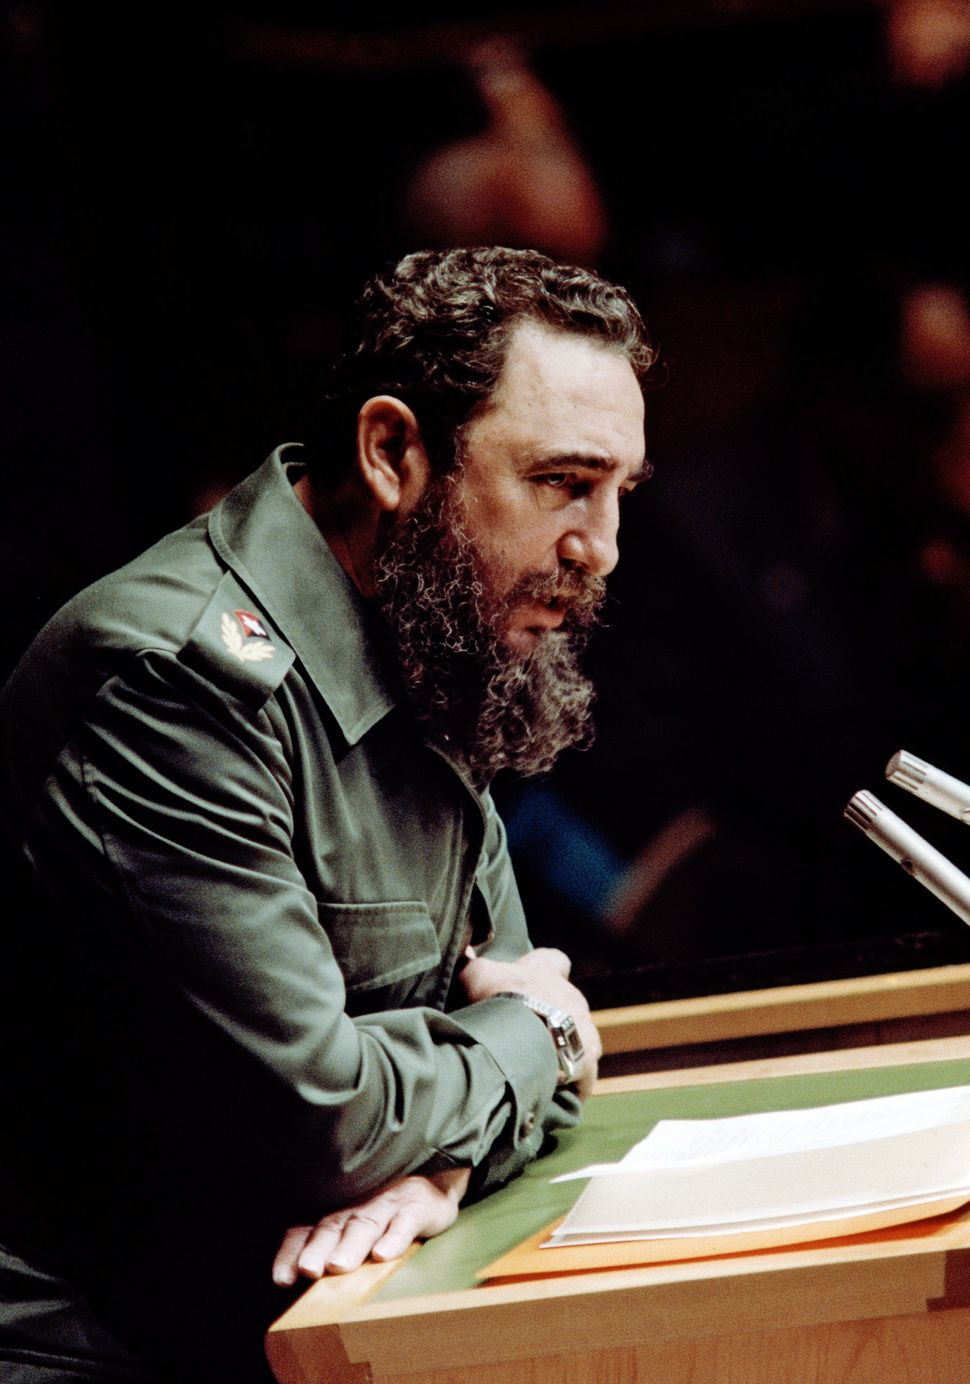 Castro addresses the United Nations General Assembly in New York in 1960.